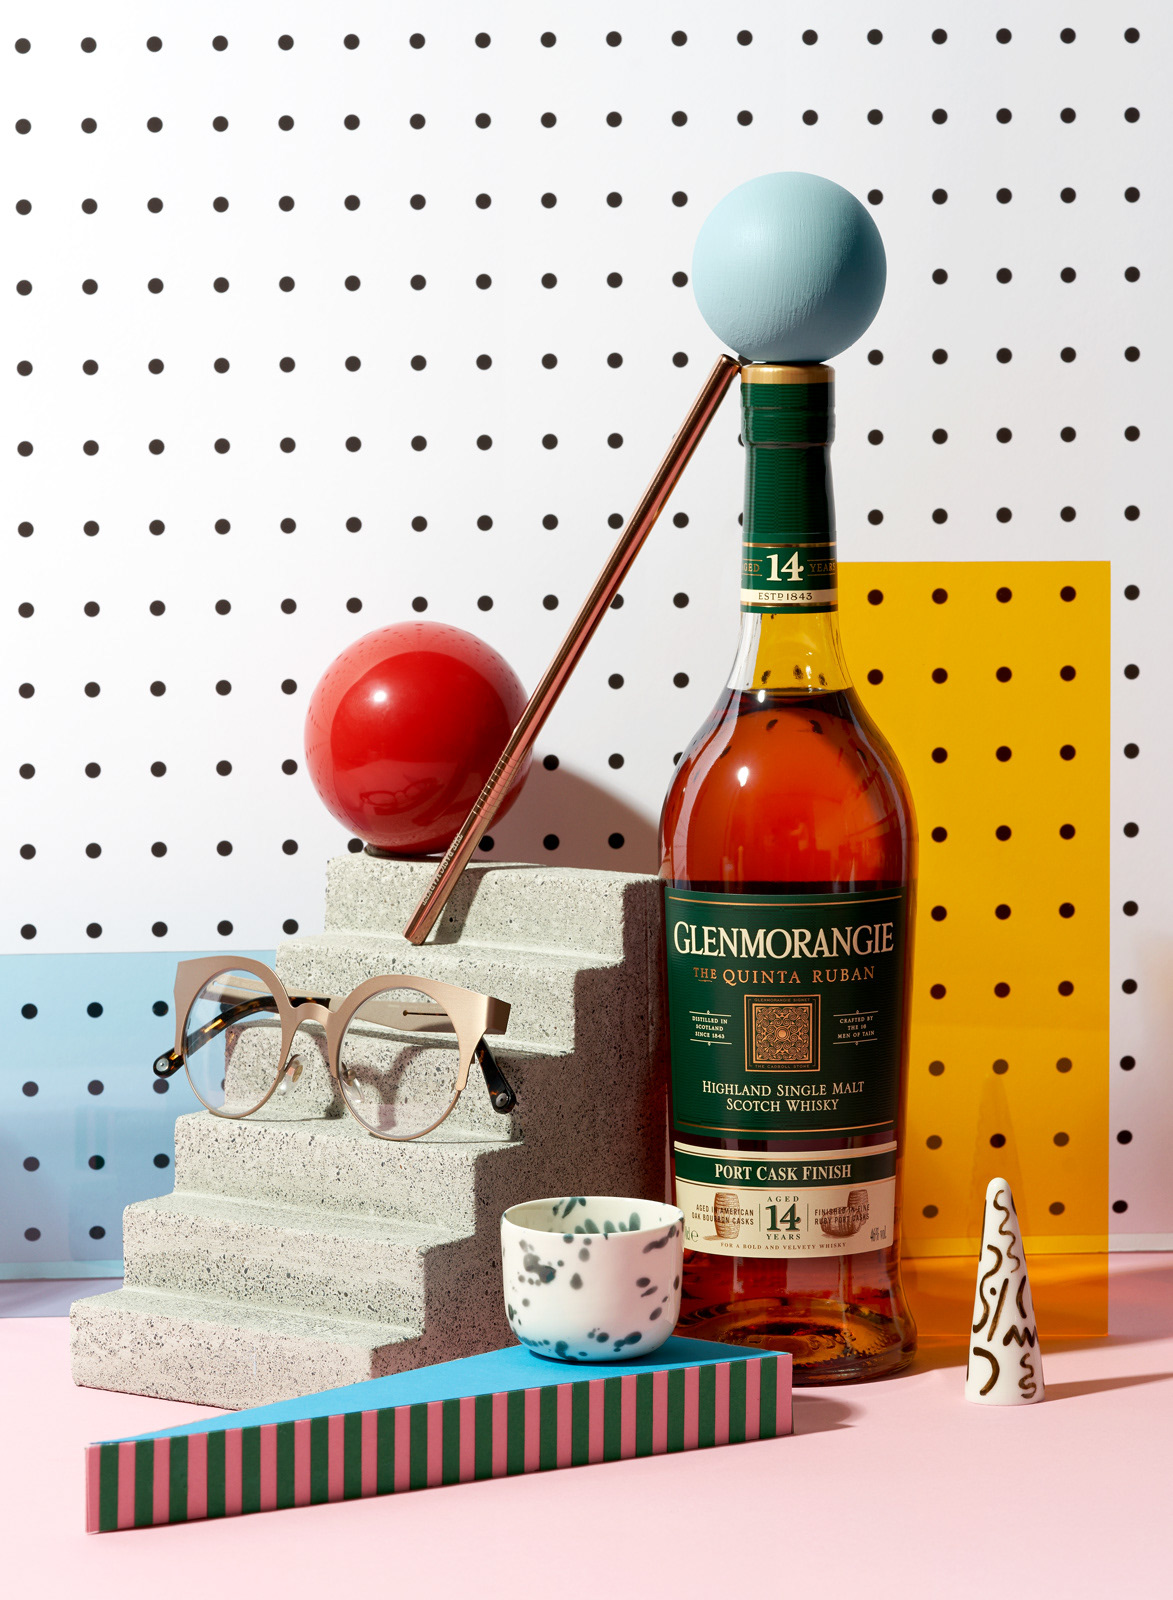 Memphis Design inspired still life gift guide with Whiskey, glasses and handmade ceramics